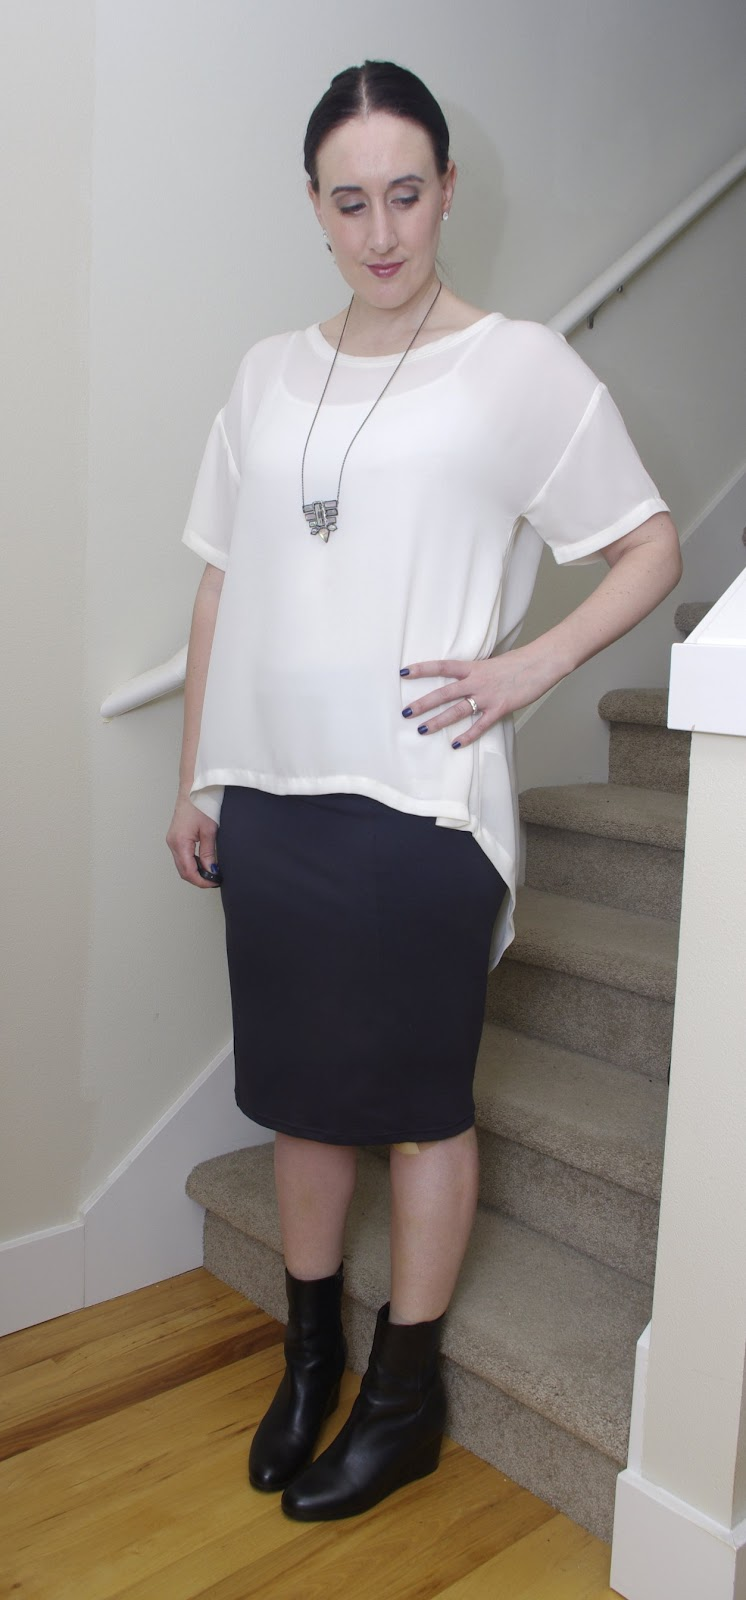 Leith fitted grey tube skirt and cream high-low tee, Vince low wedge booties in black, Alexis Bittar bib pendant necklace